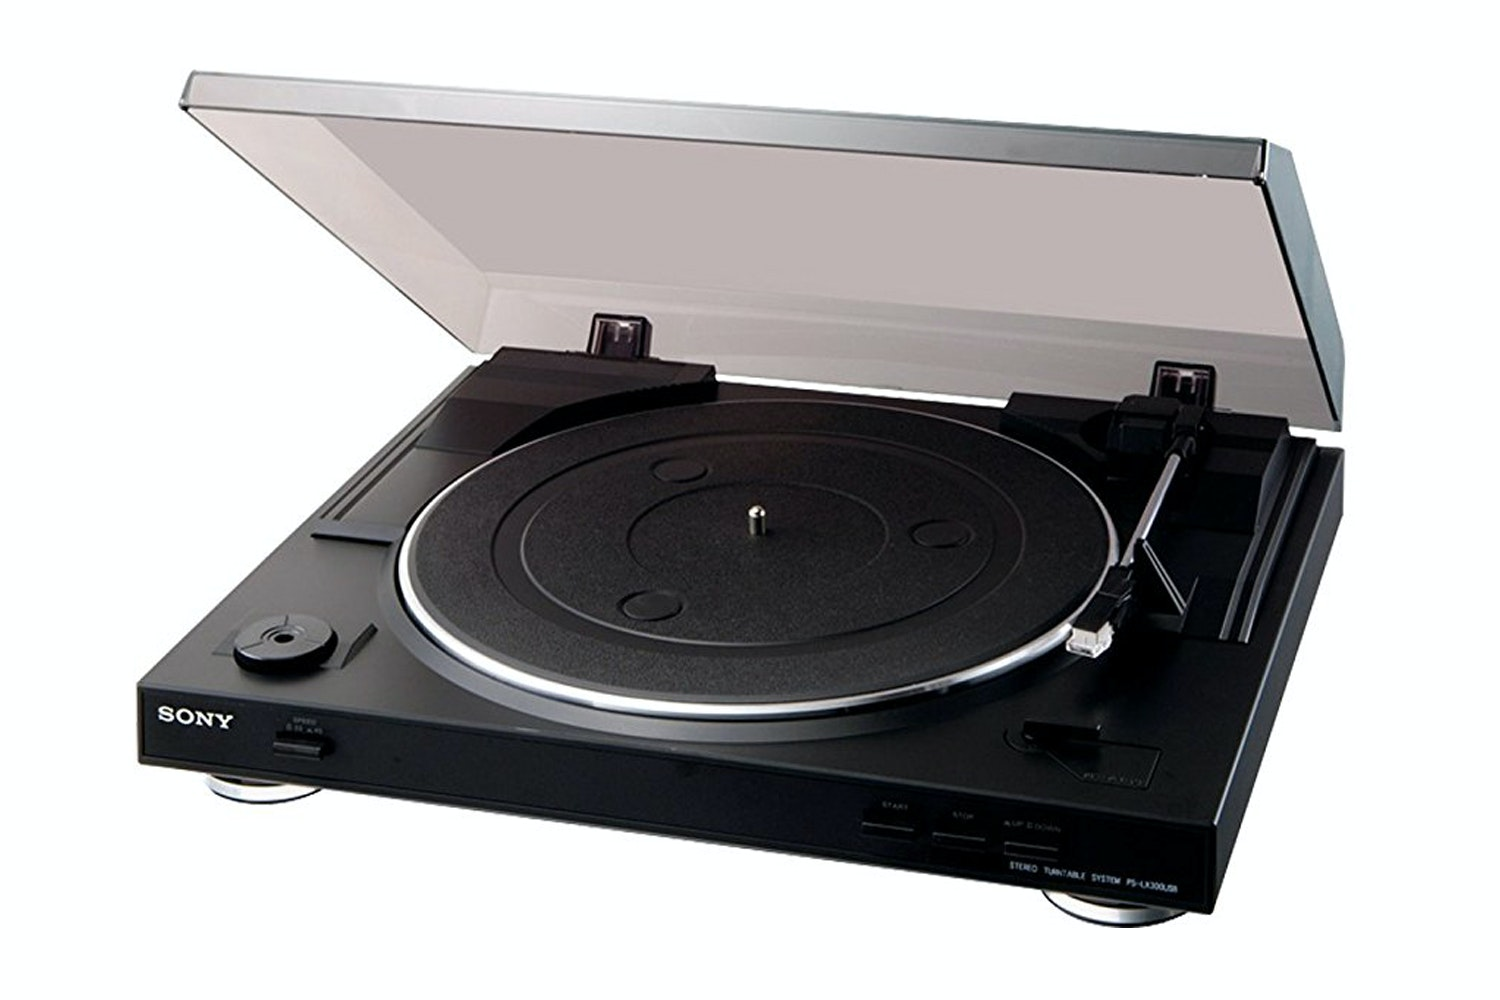 Sony USB Turntable | PSLX300USB.CEK